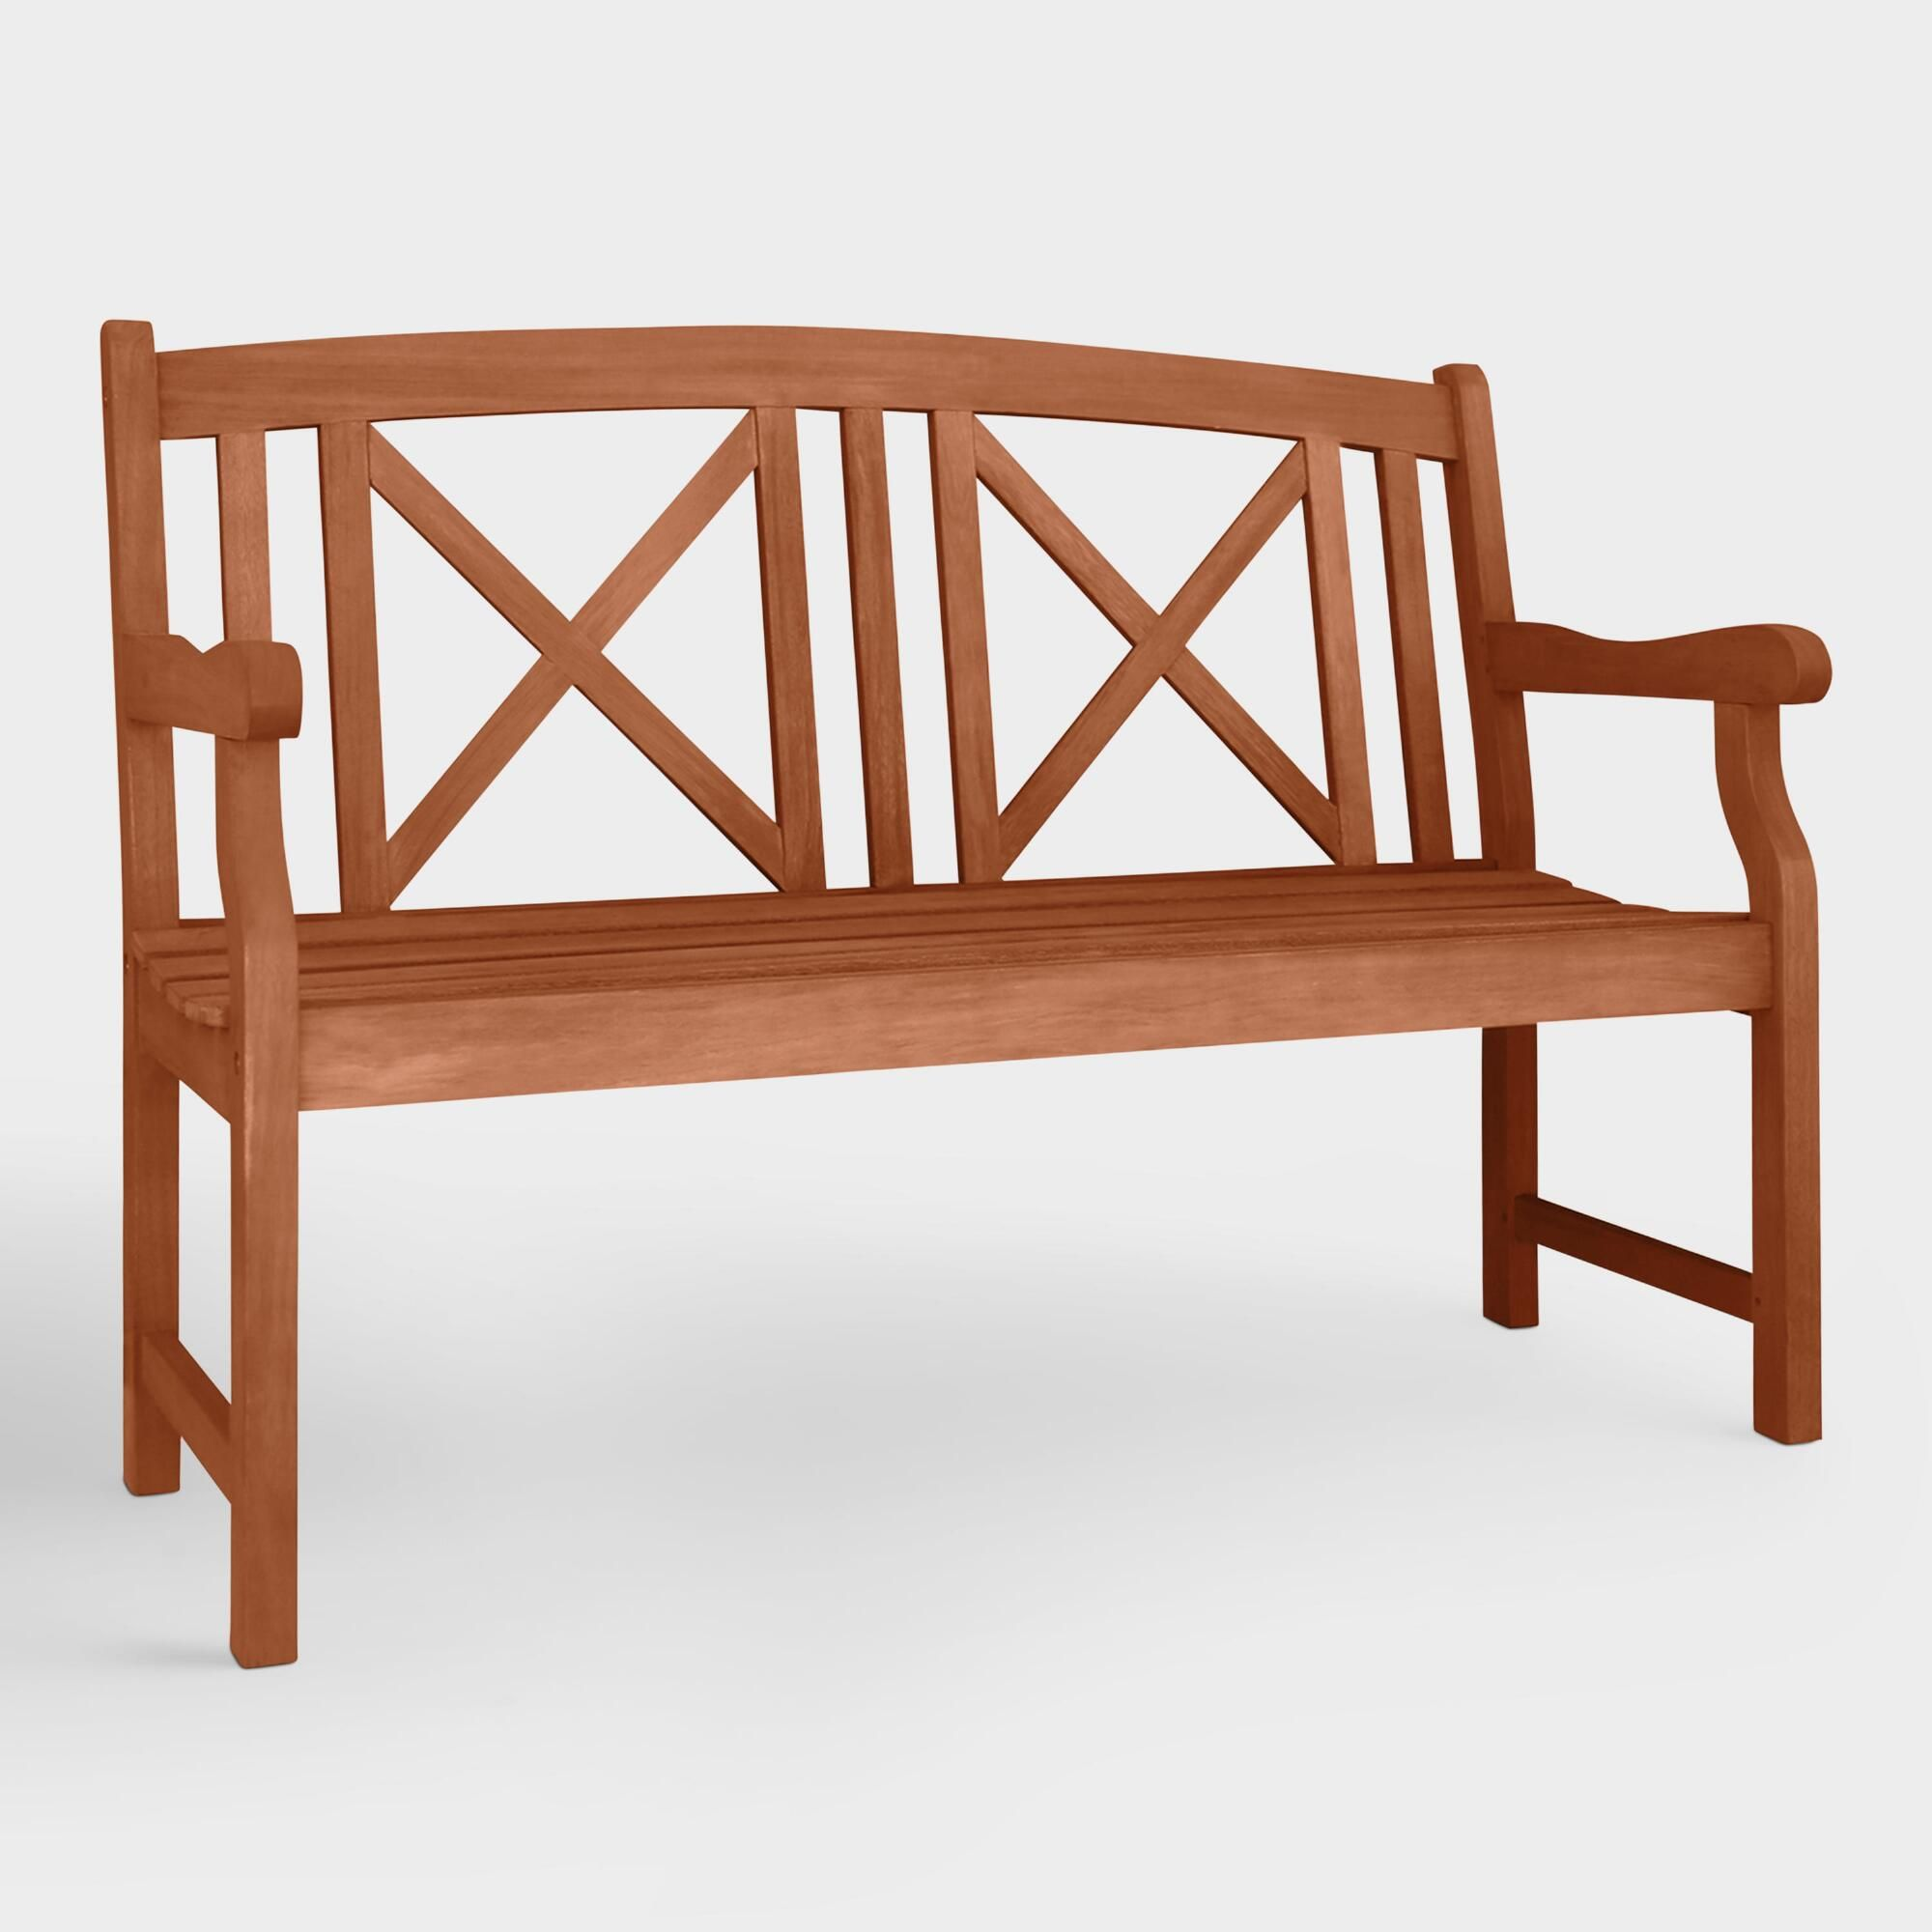 Tremendous Small Greenport Garden Bench Brown Green Natural Wood By Dailytribune Chair Design For Home Dailytribuneorg